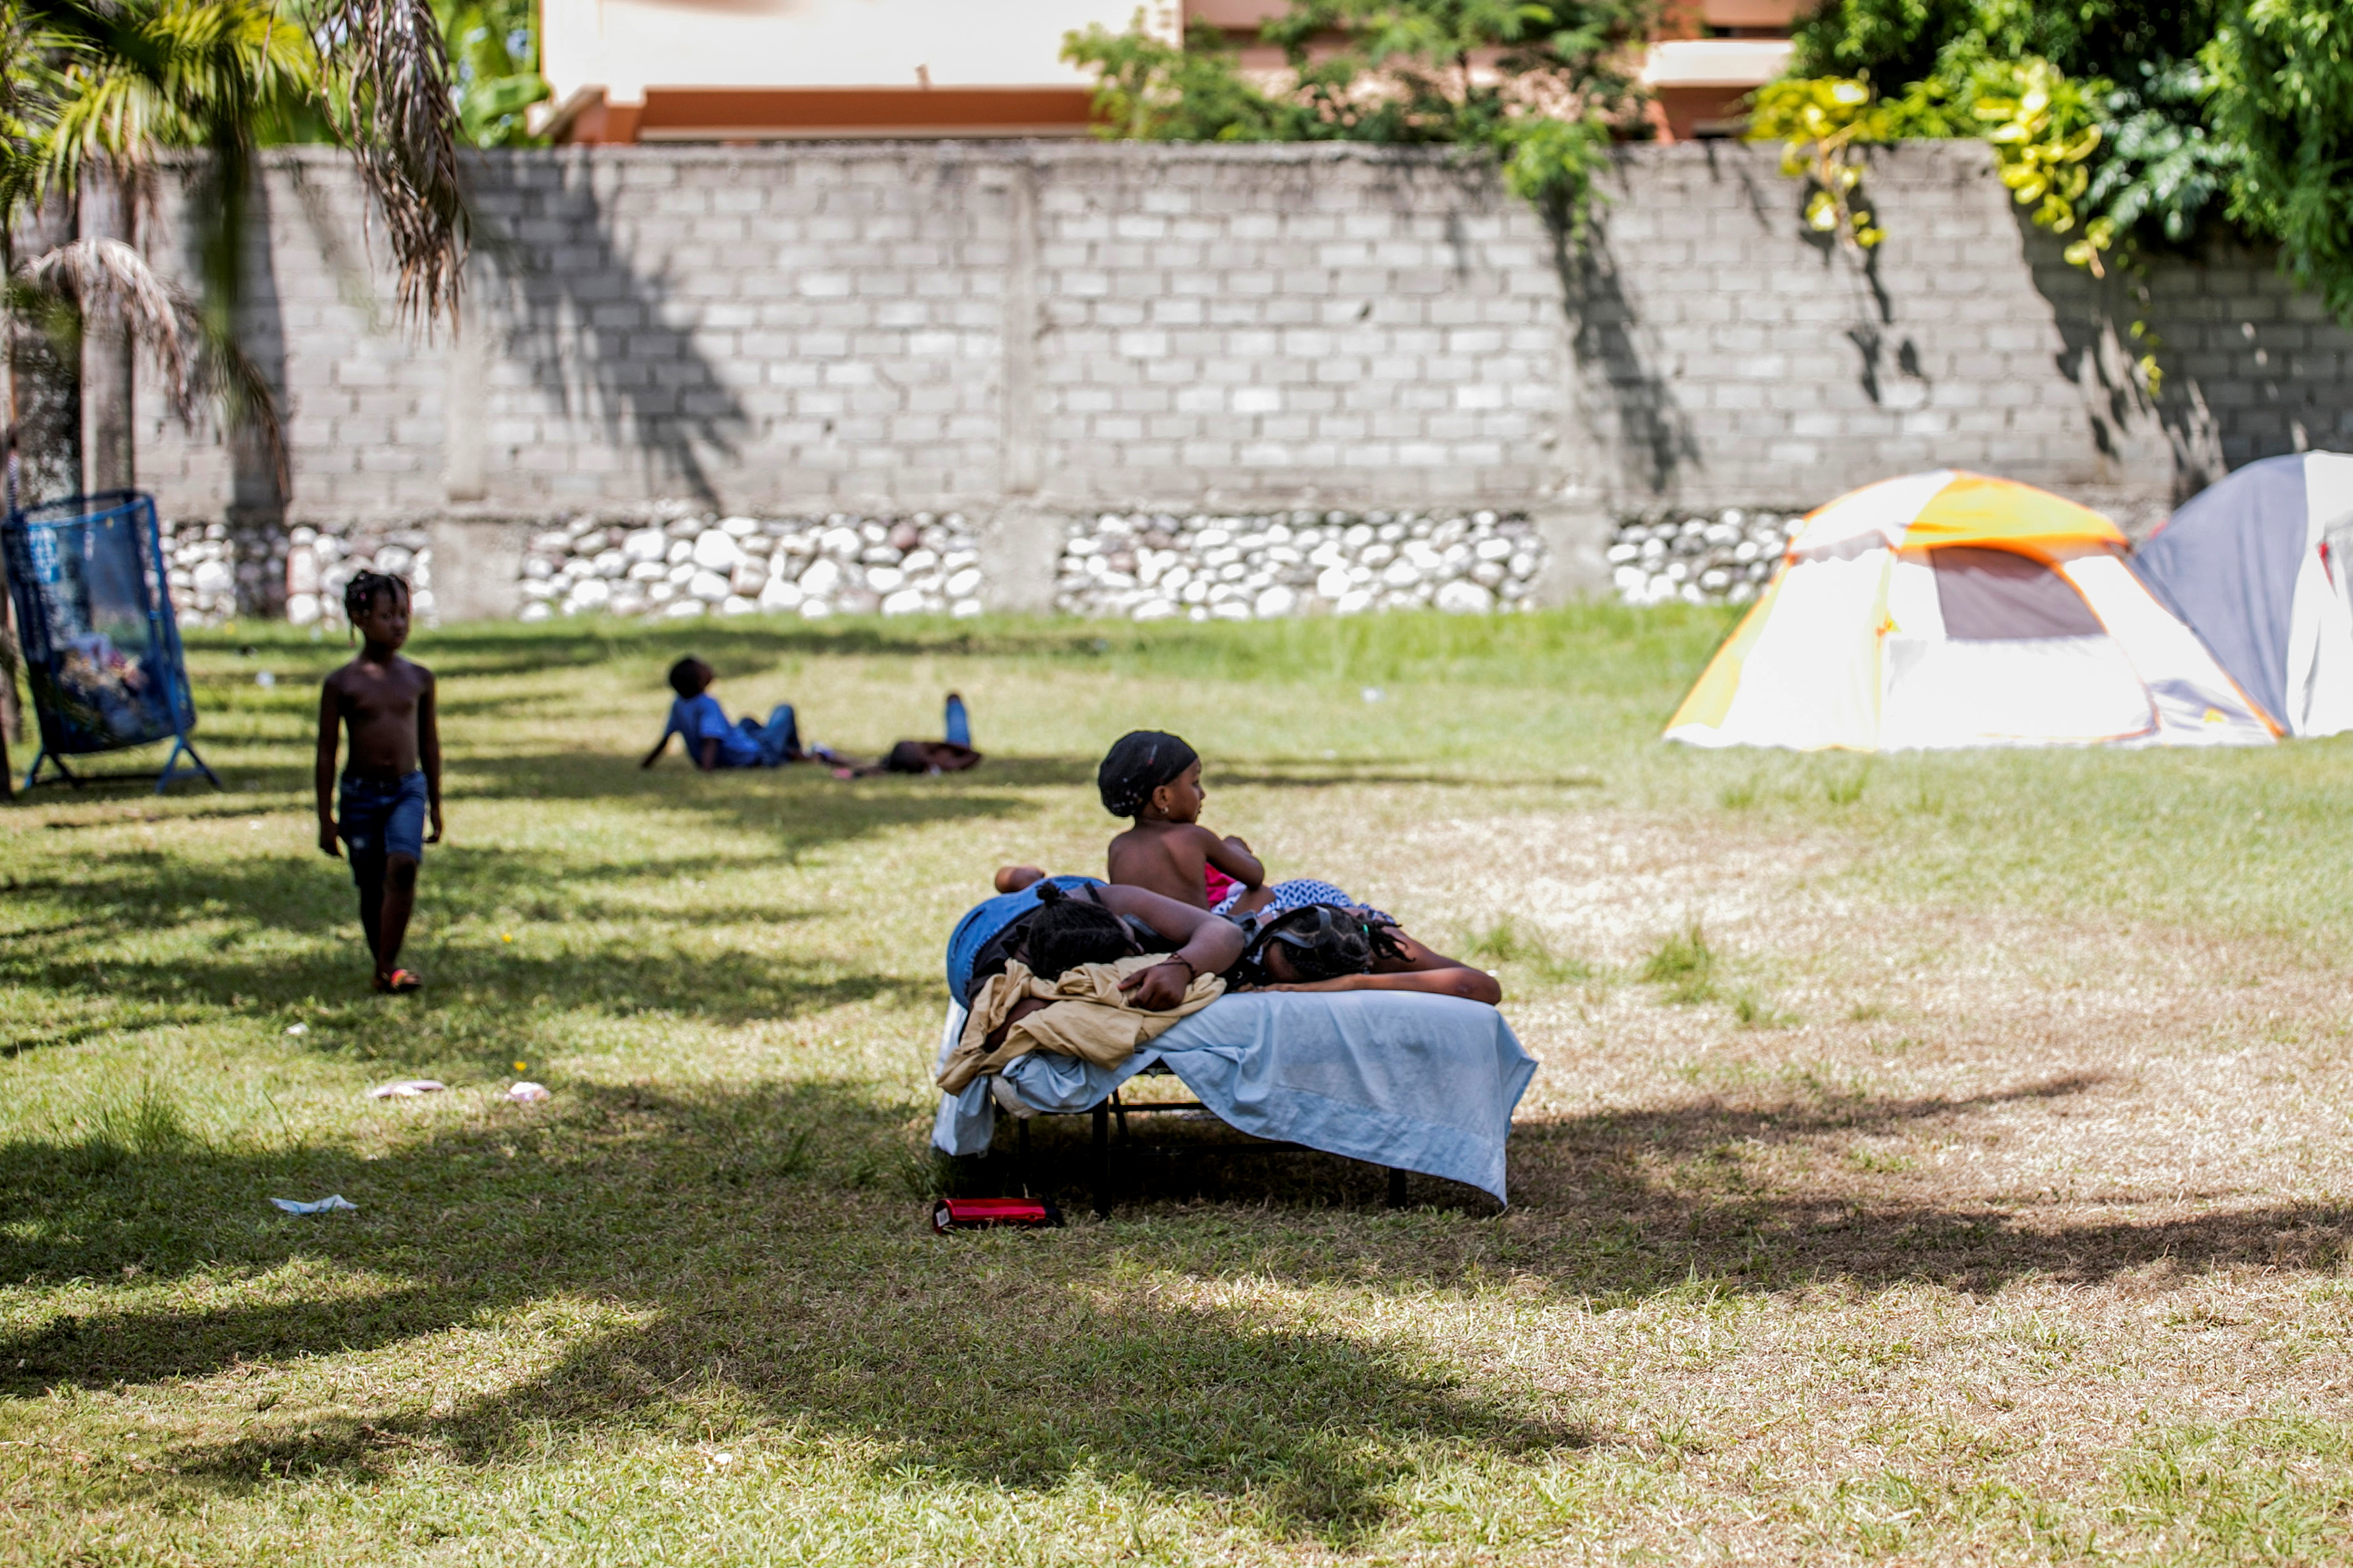 People stay in the shade at an encampment set up on a soccer field after Saturday's 7.2 magnitude quake, in Les Cayes, Haiti August 16, 2021. REUTERS/Ralph Tedy Erol